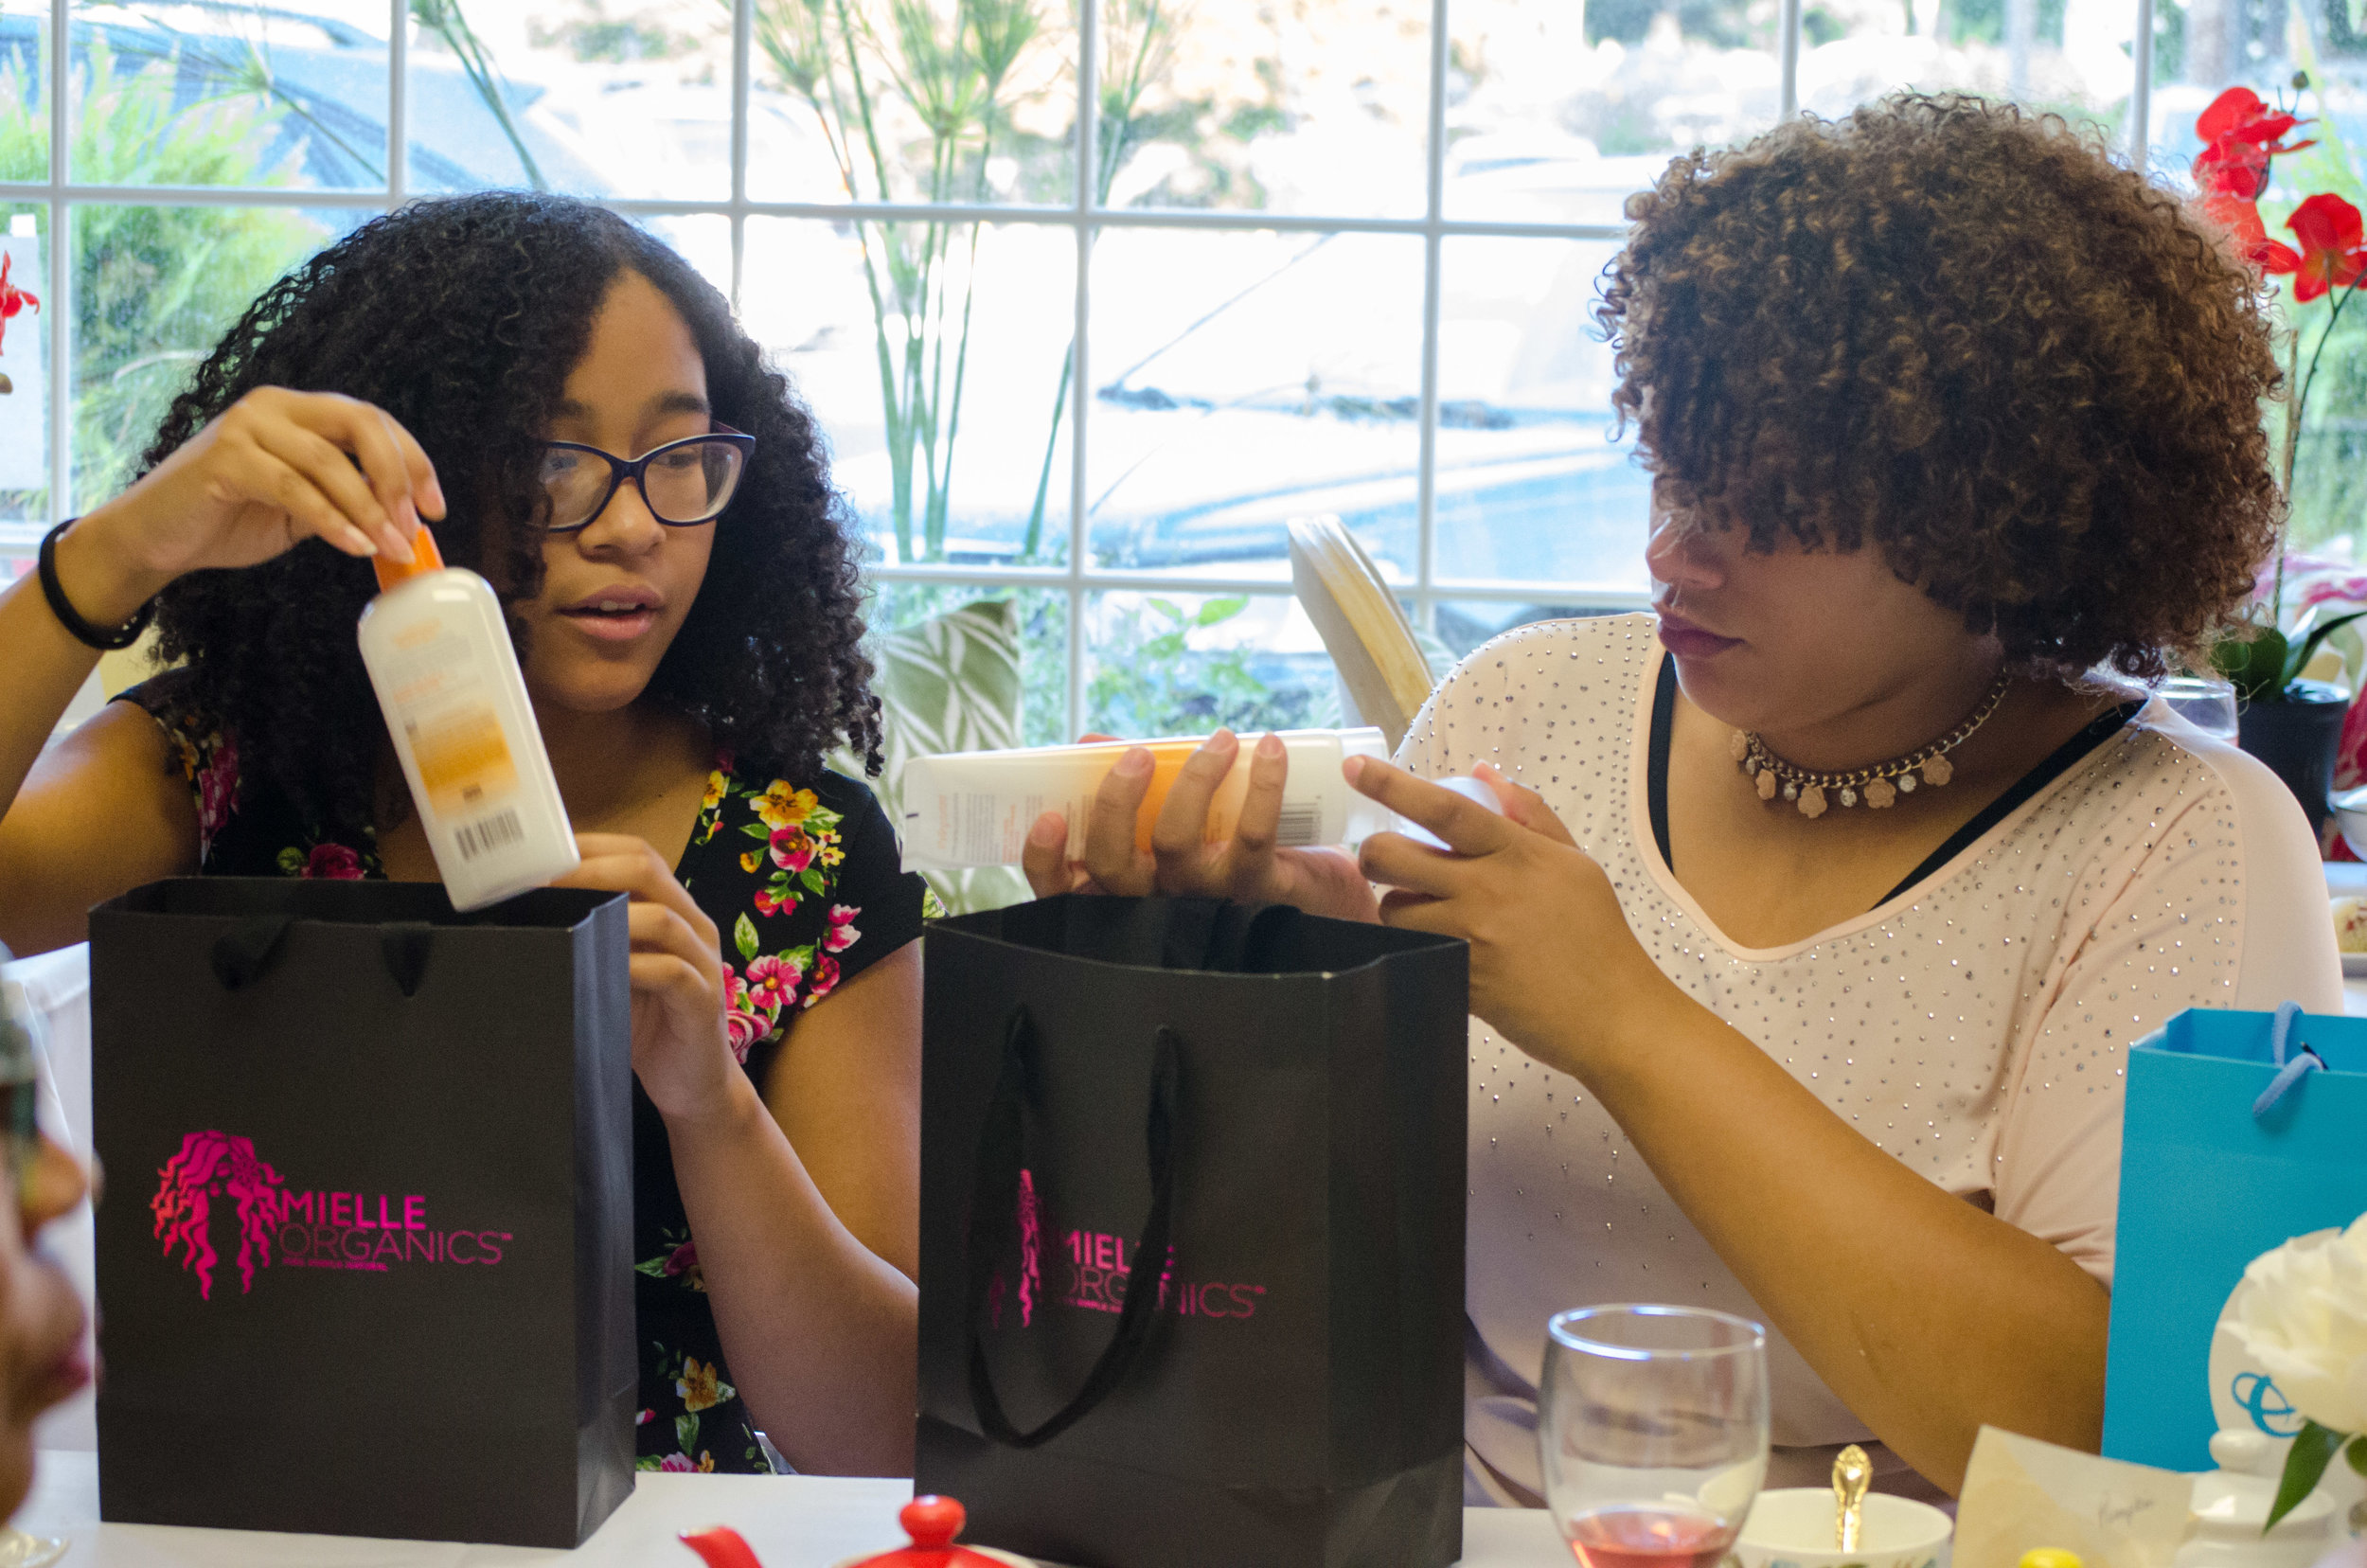 Special Thanks to Mielle Organics and Cantu!